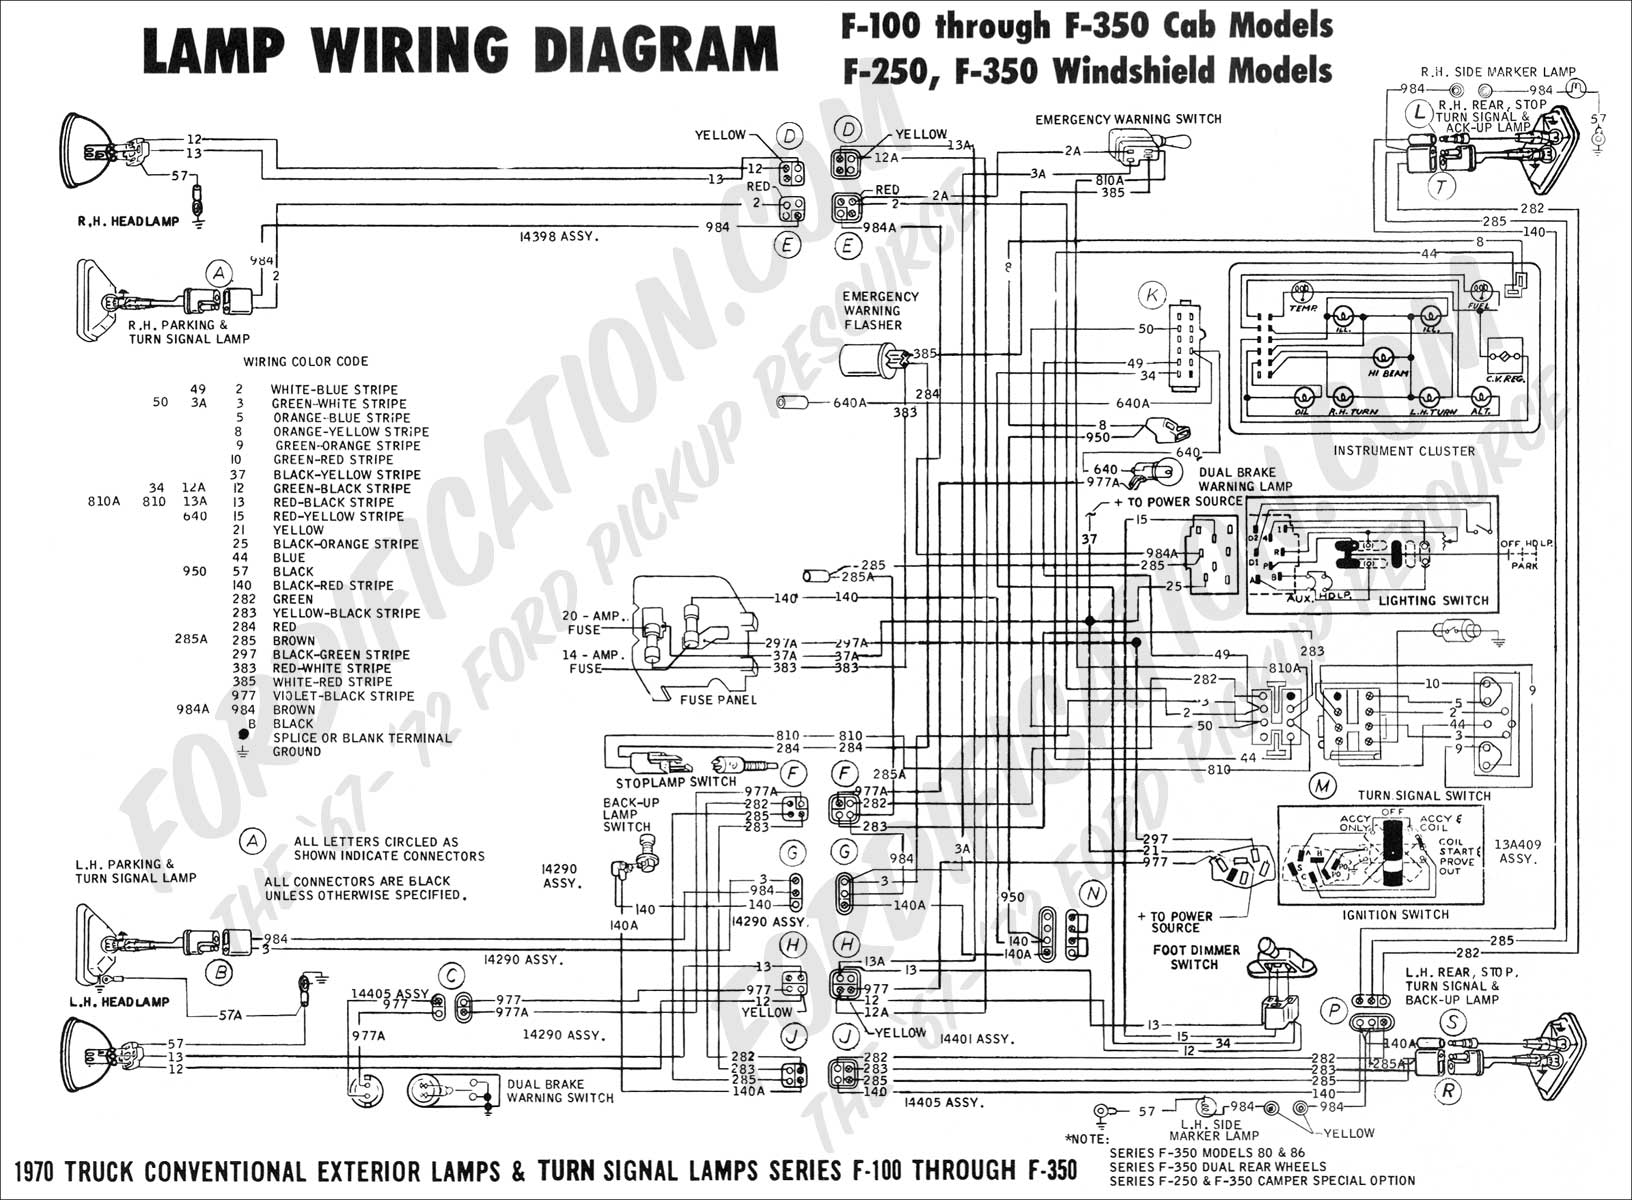 wiring diagram_70ext lights01 1986 ford f250 wiring diagram ford truck fuel system diagram Ford F-250 Trailer Wiring Diagram at honlapkeszites.co